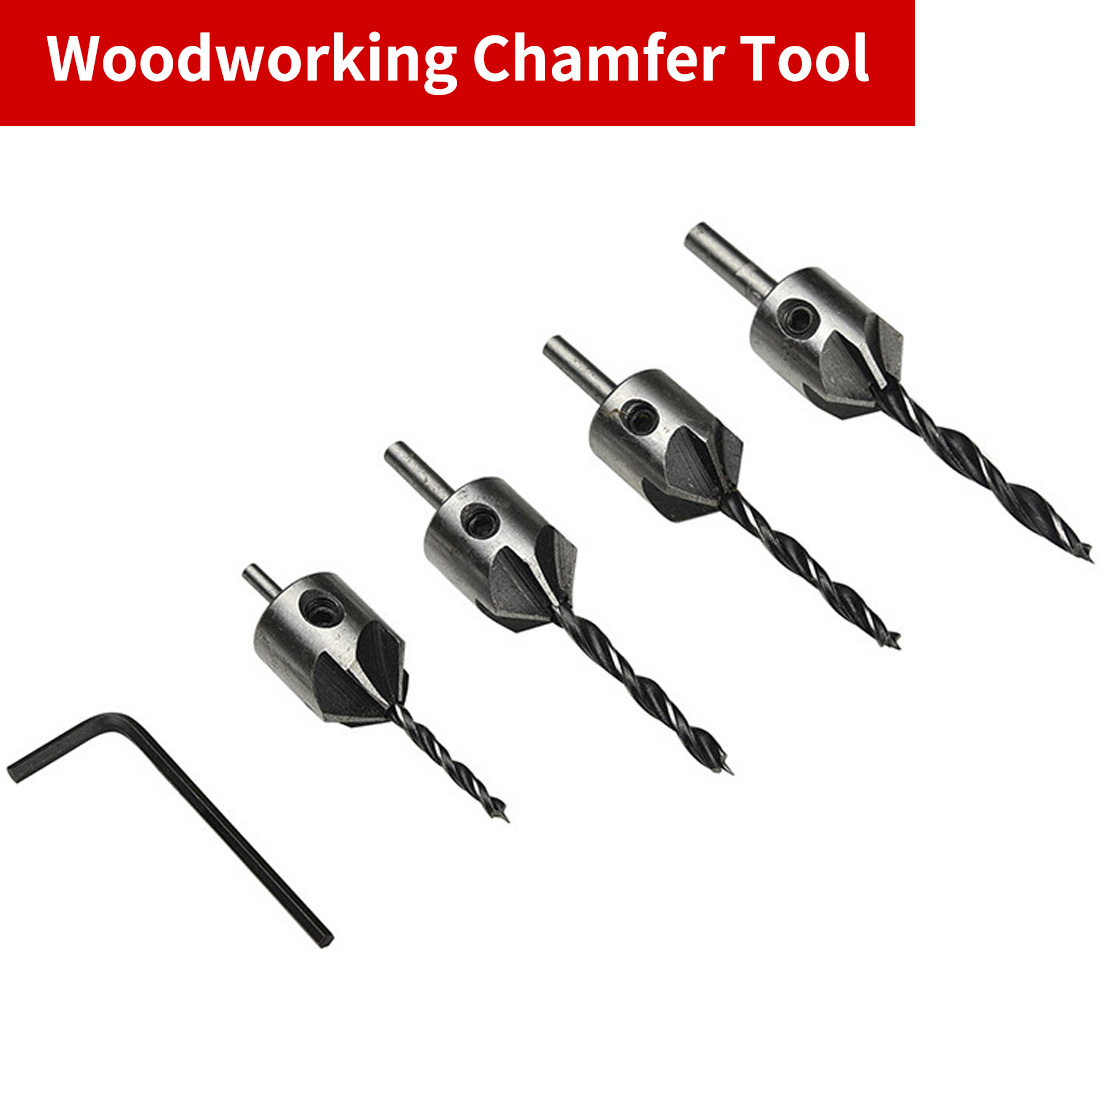 Countersink Drill Bit Pilot Drill Bits Set 5 Flute HSS Reamer Screw Hinge Hole Saw Chamfer 3mm 4mm 5mm 6mm 4pcs